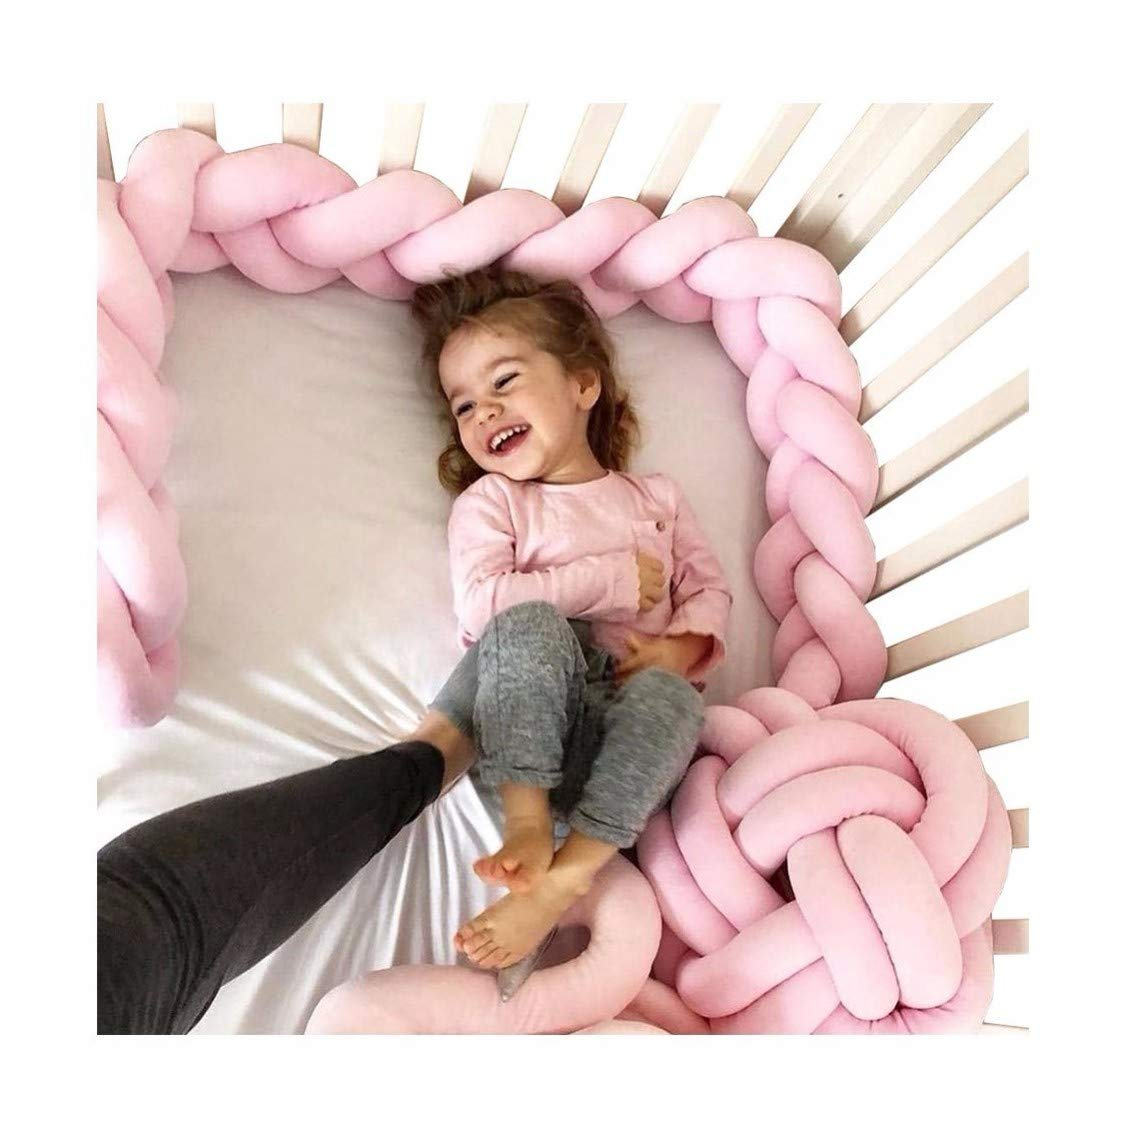 Baby Infant 1m/1.5m Crib Bumper Pads Knotted Braided Plush Nursery Bed Safety Rail Guard, Cradle Protector, Cot Sleep Bumper Pillow, Knot Ball, 3-Strand, Pure Color,Grey, 1.5m YWXJY